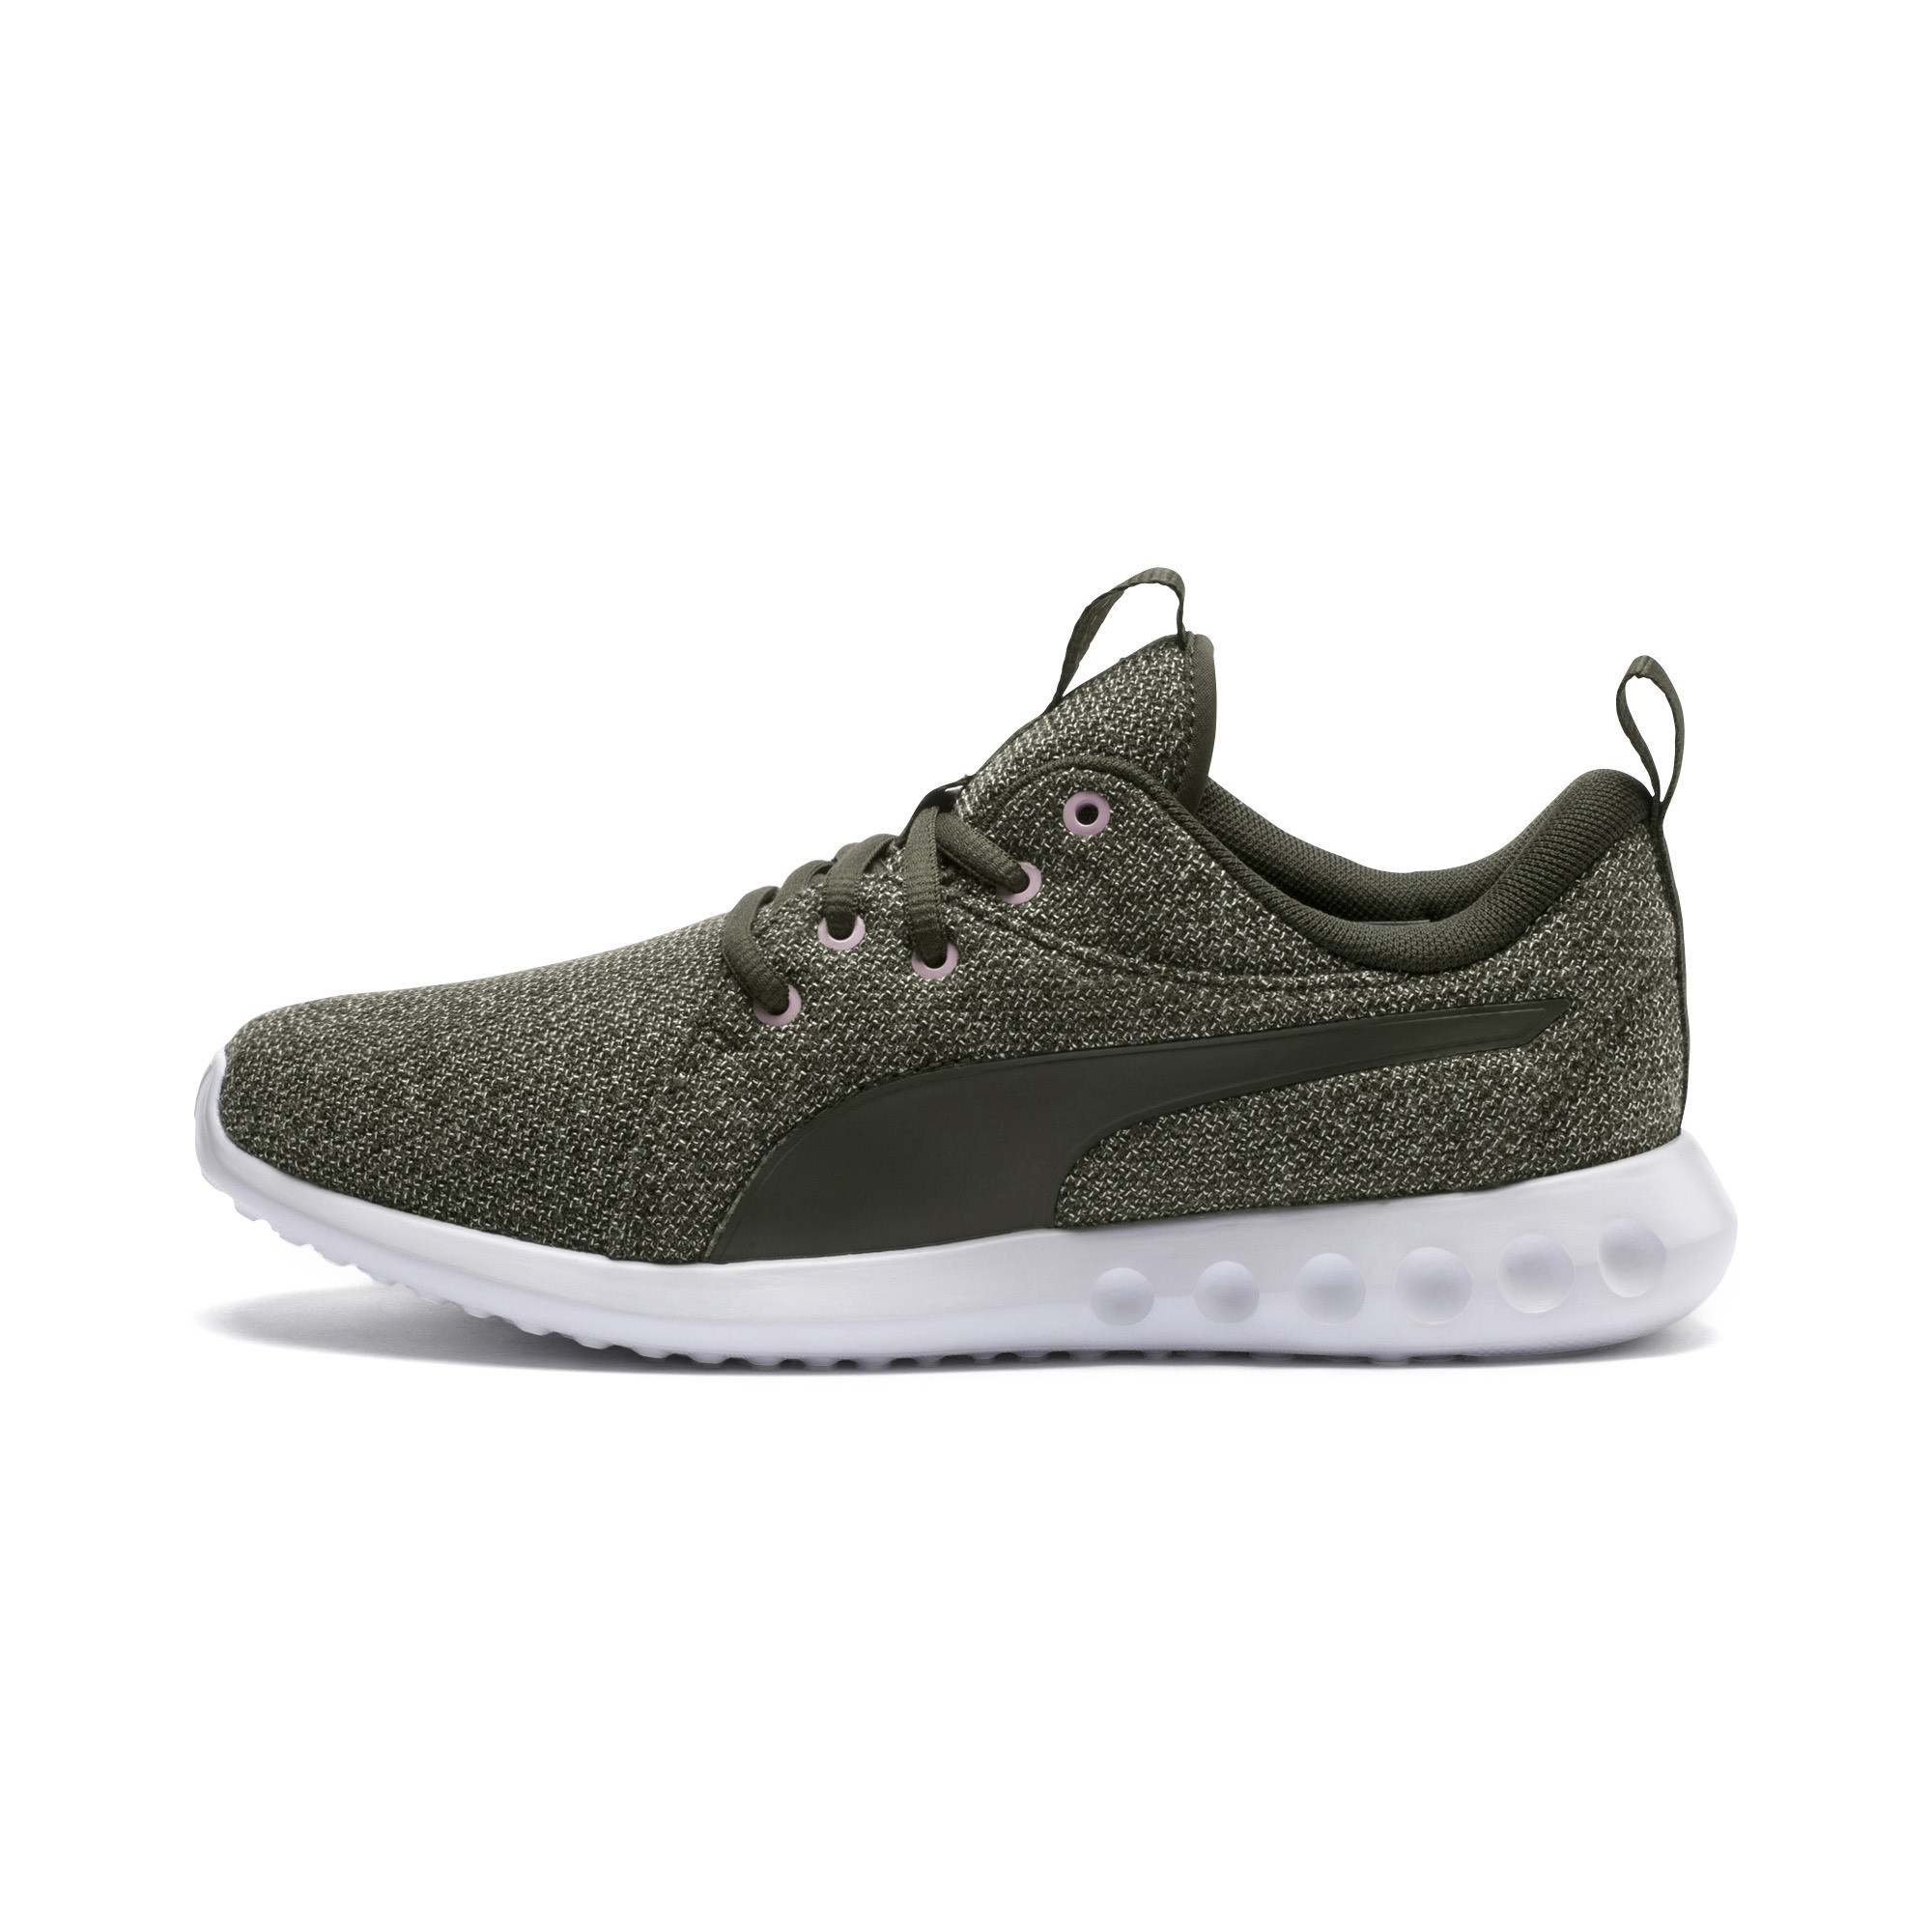 PUMA-Women-039-s-Carson-2-Knit-Running-Shoes thumbnail 10